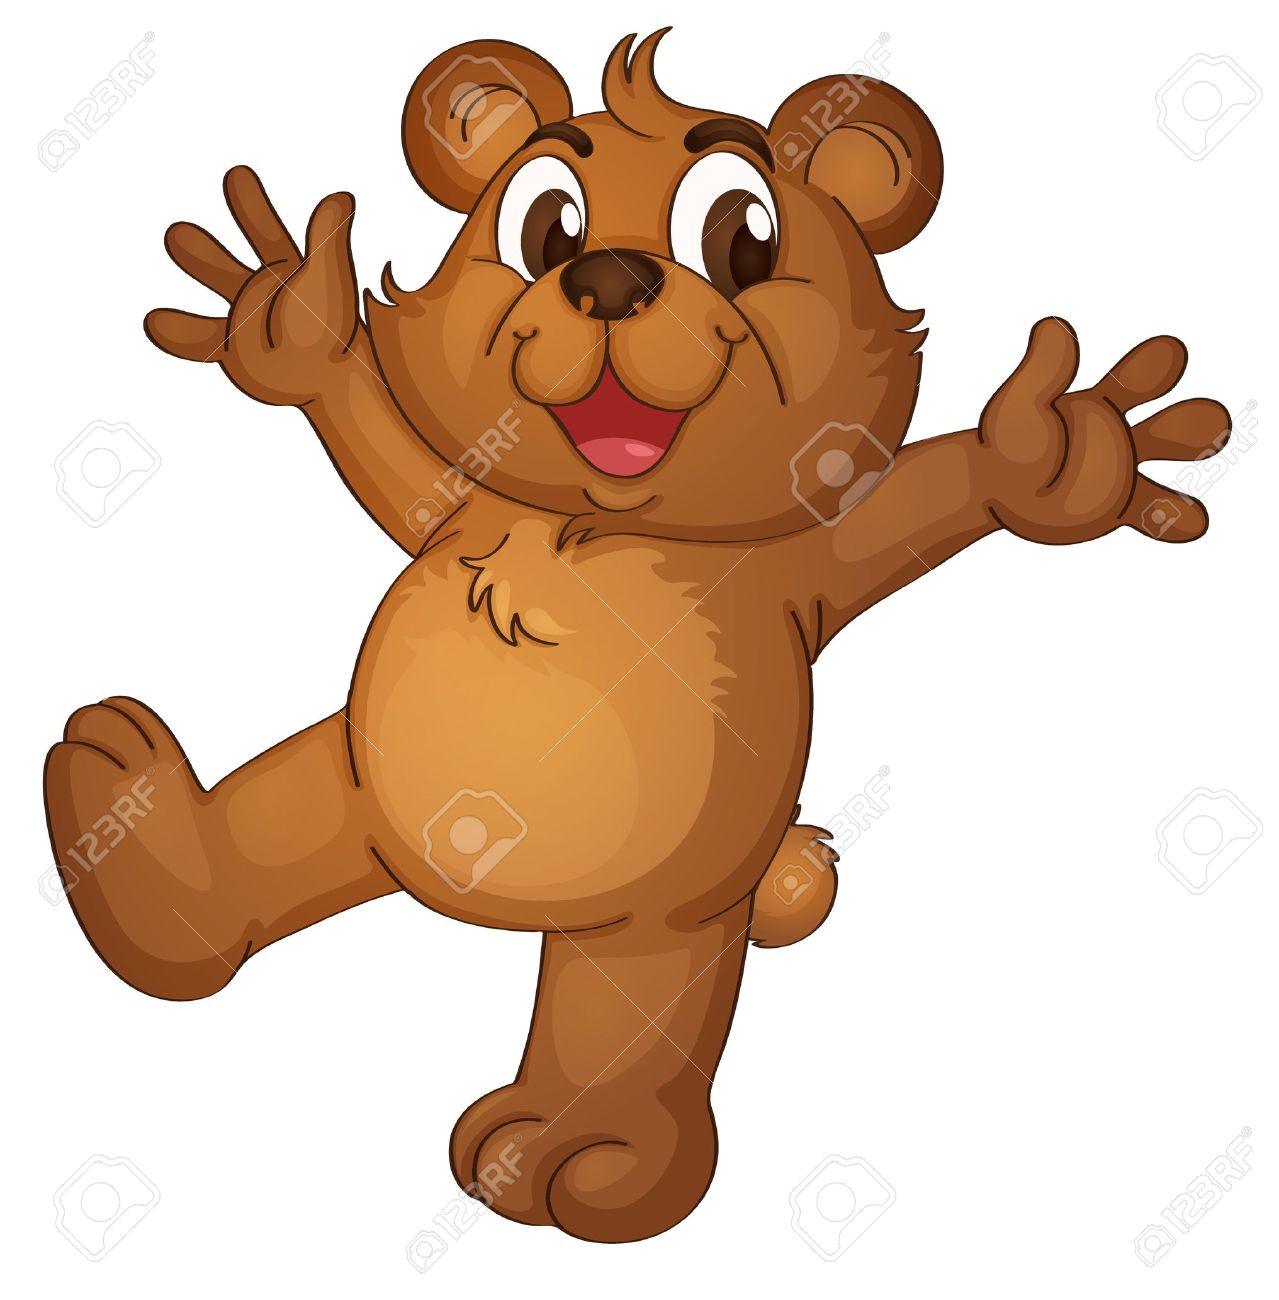 Teddy bear acting on a white background Stock Vector - 13376890